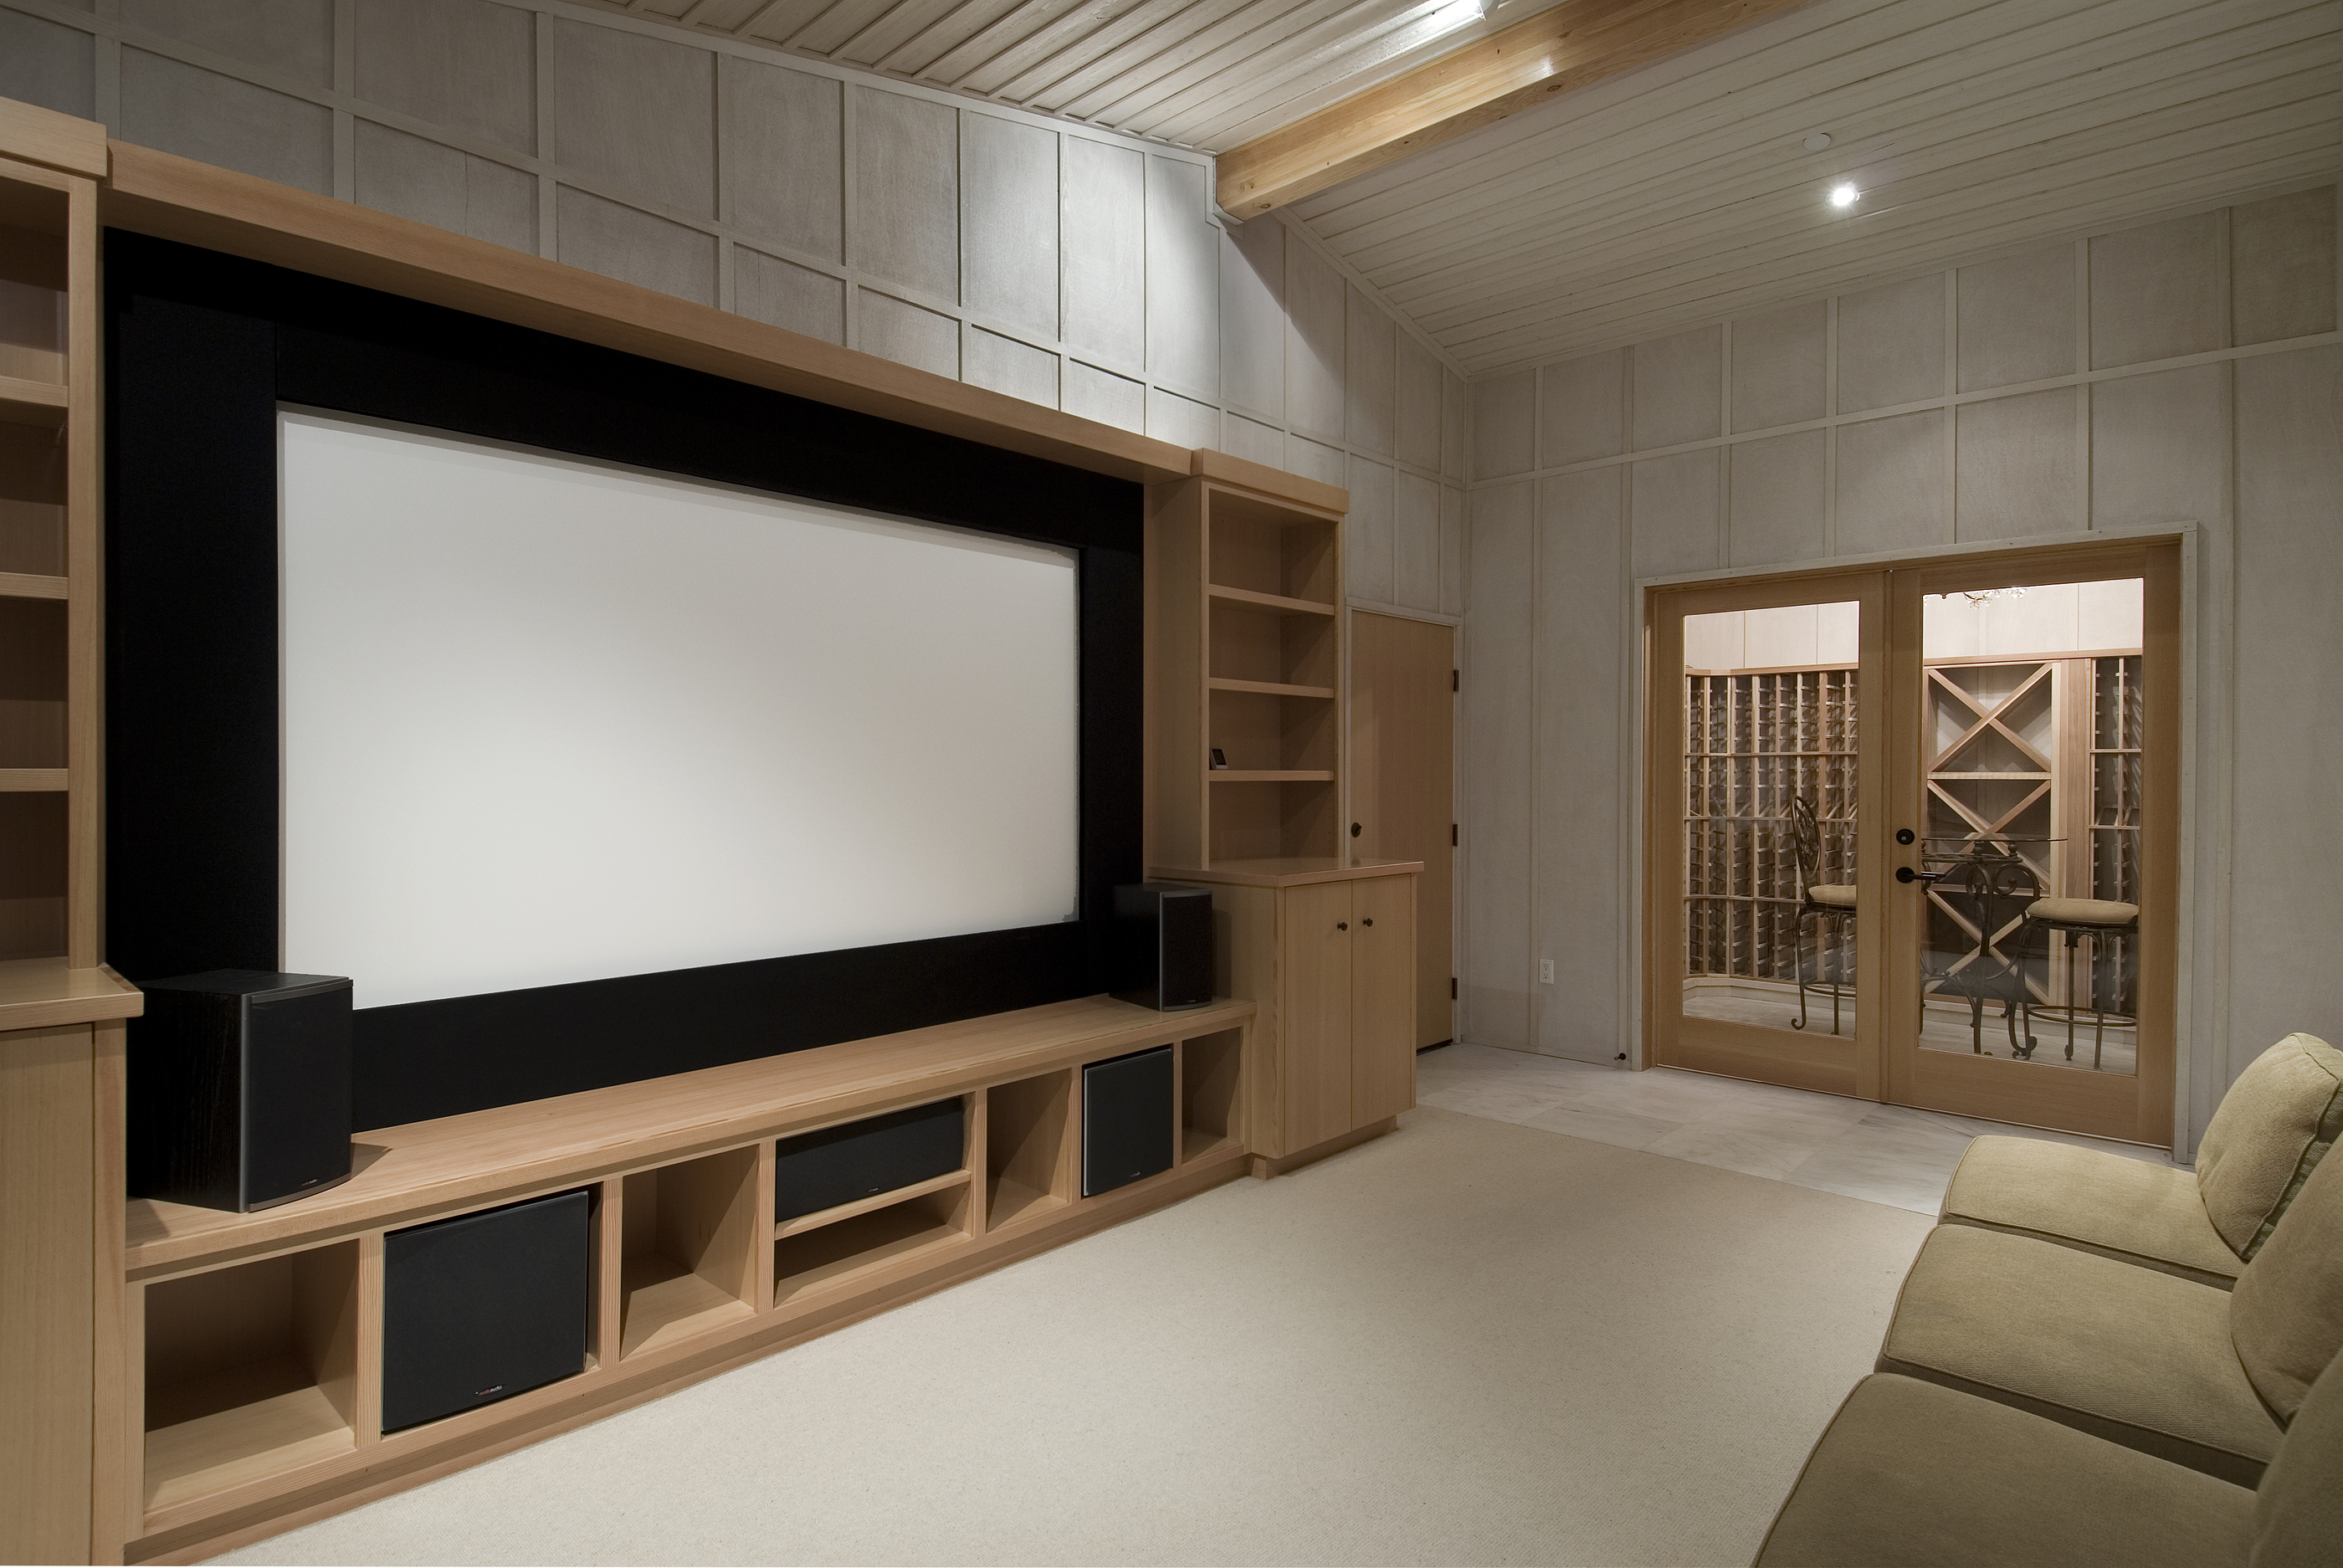 CINEMA EXPERIENCE RIGHT AT HOME